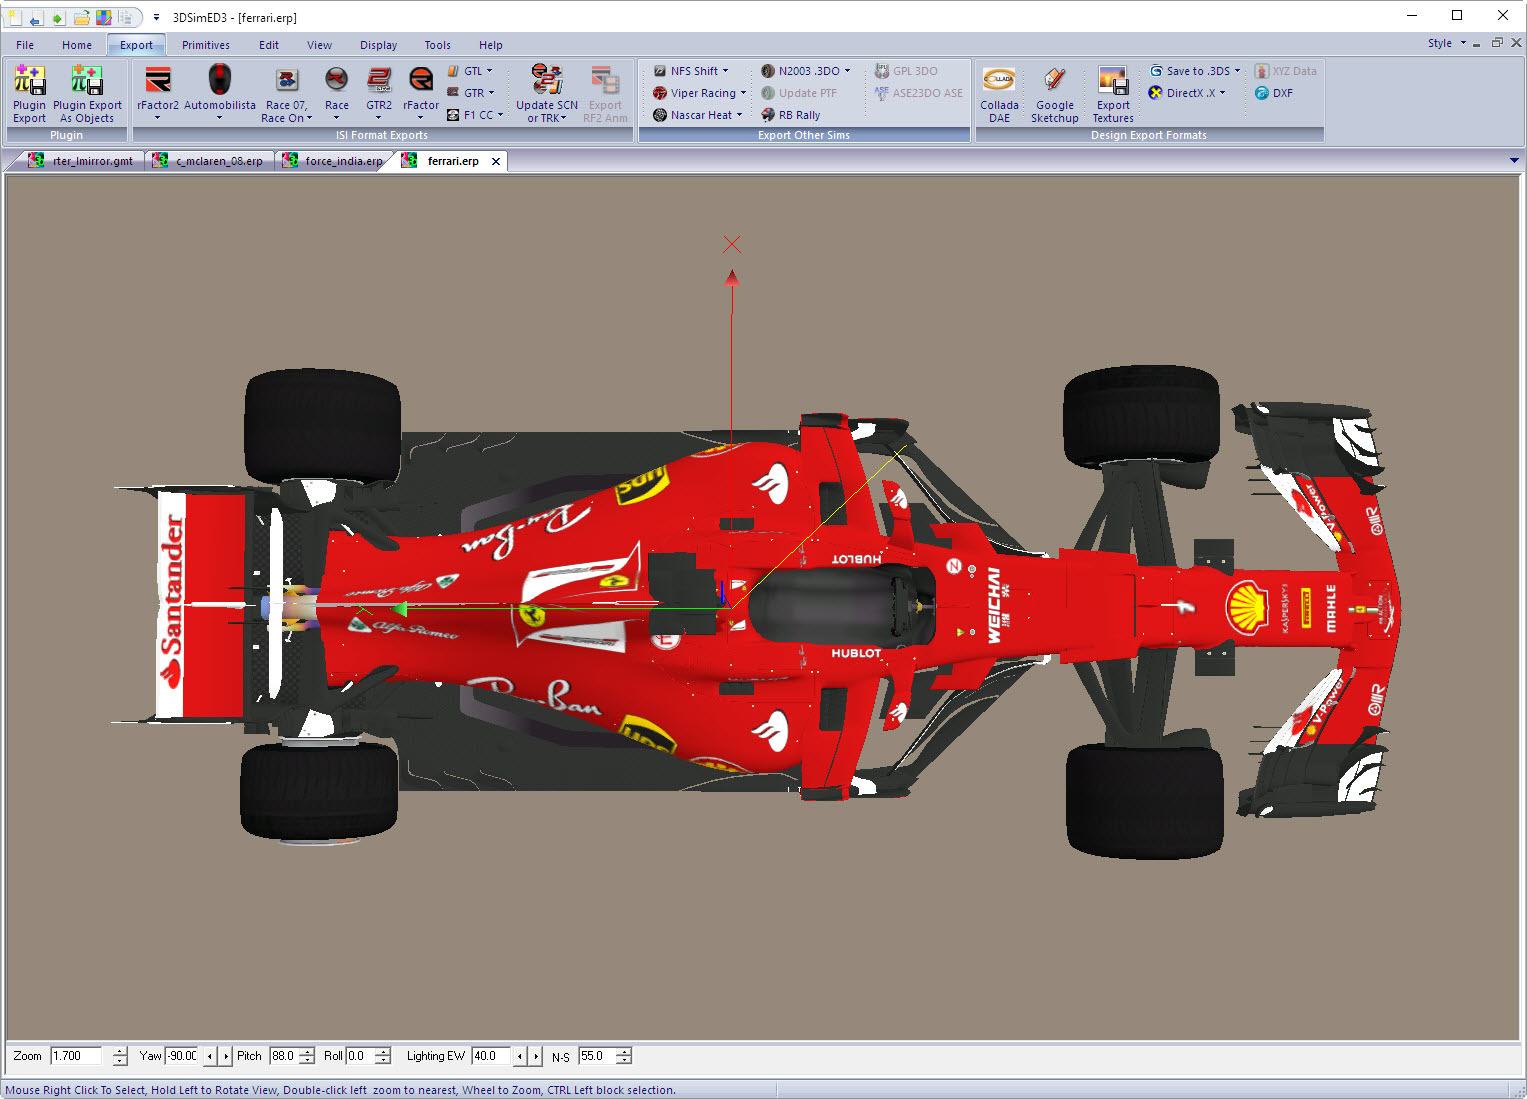 SimGarage | Home to 3DSimED